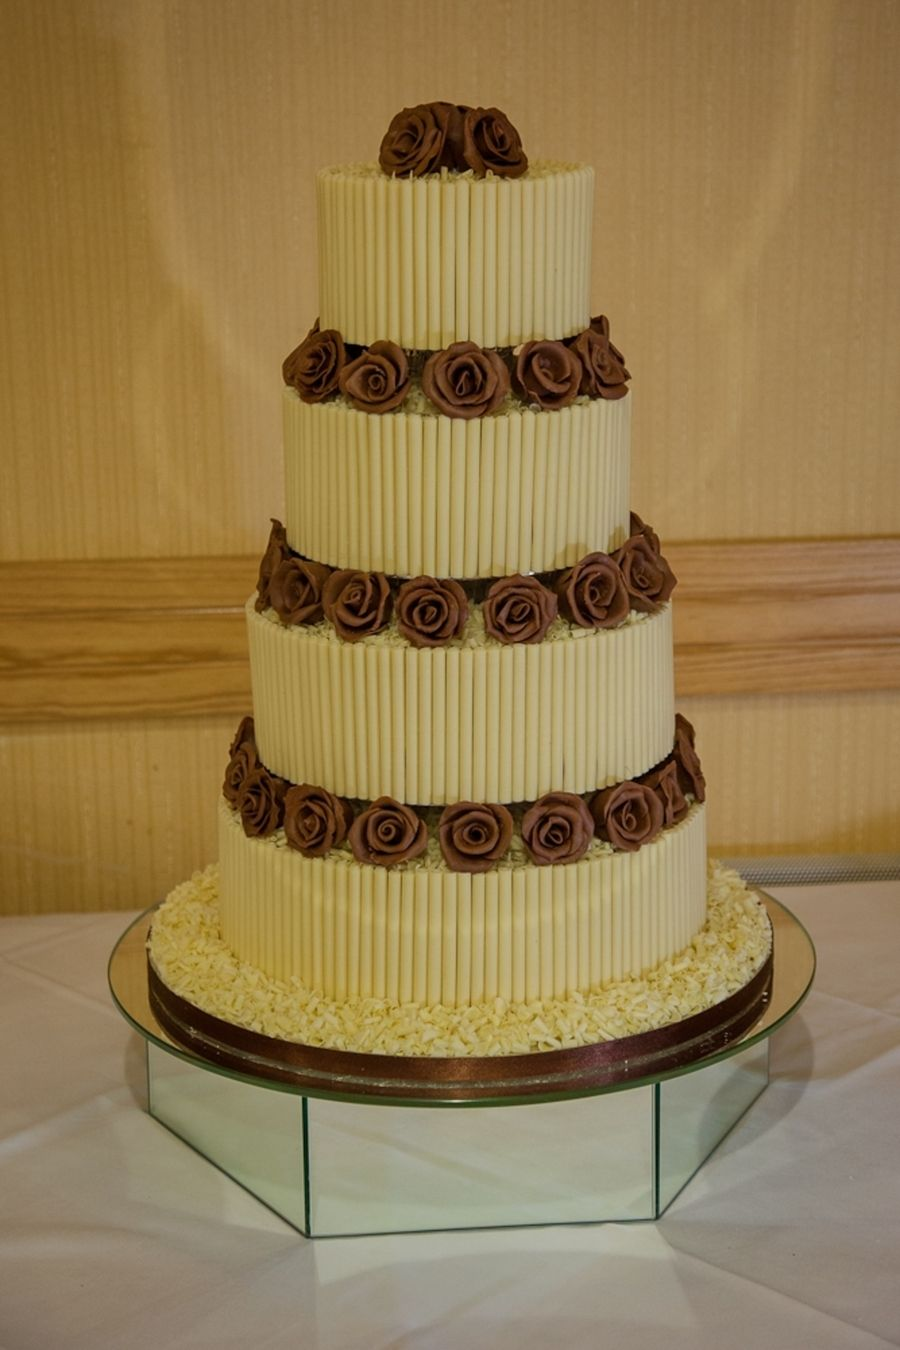 4 Tier Chocolate Wedding Cake 4 Tier all chocolate wedding